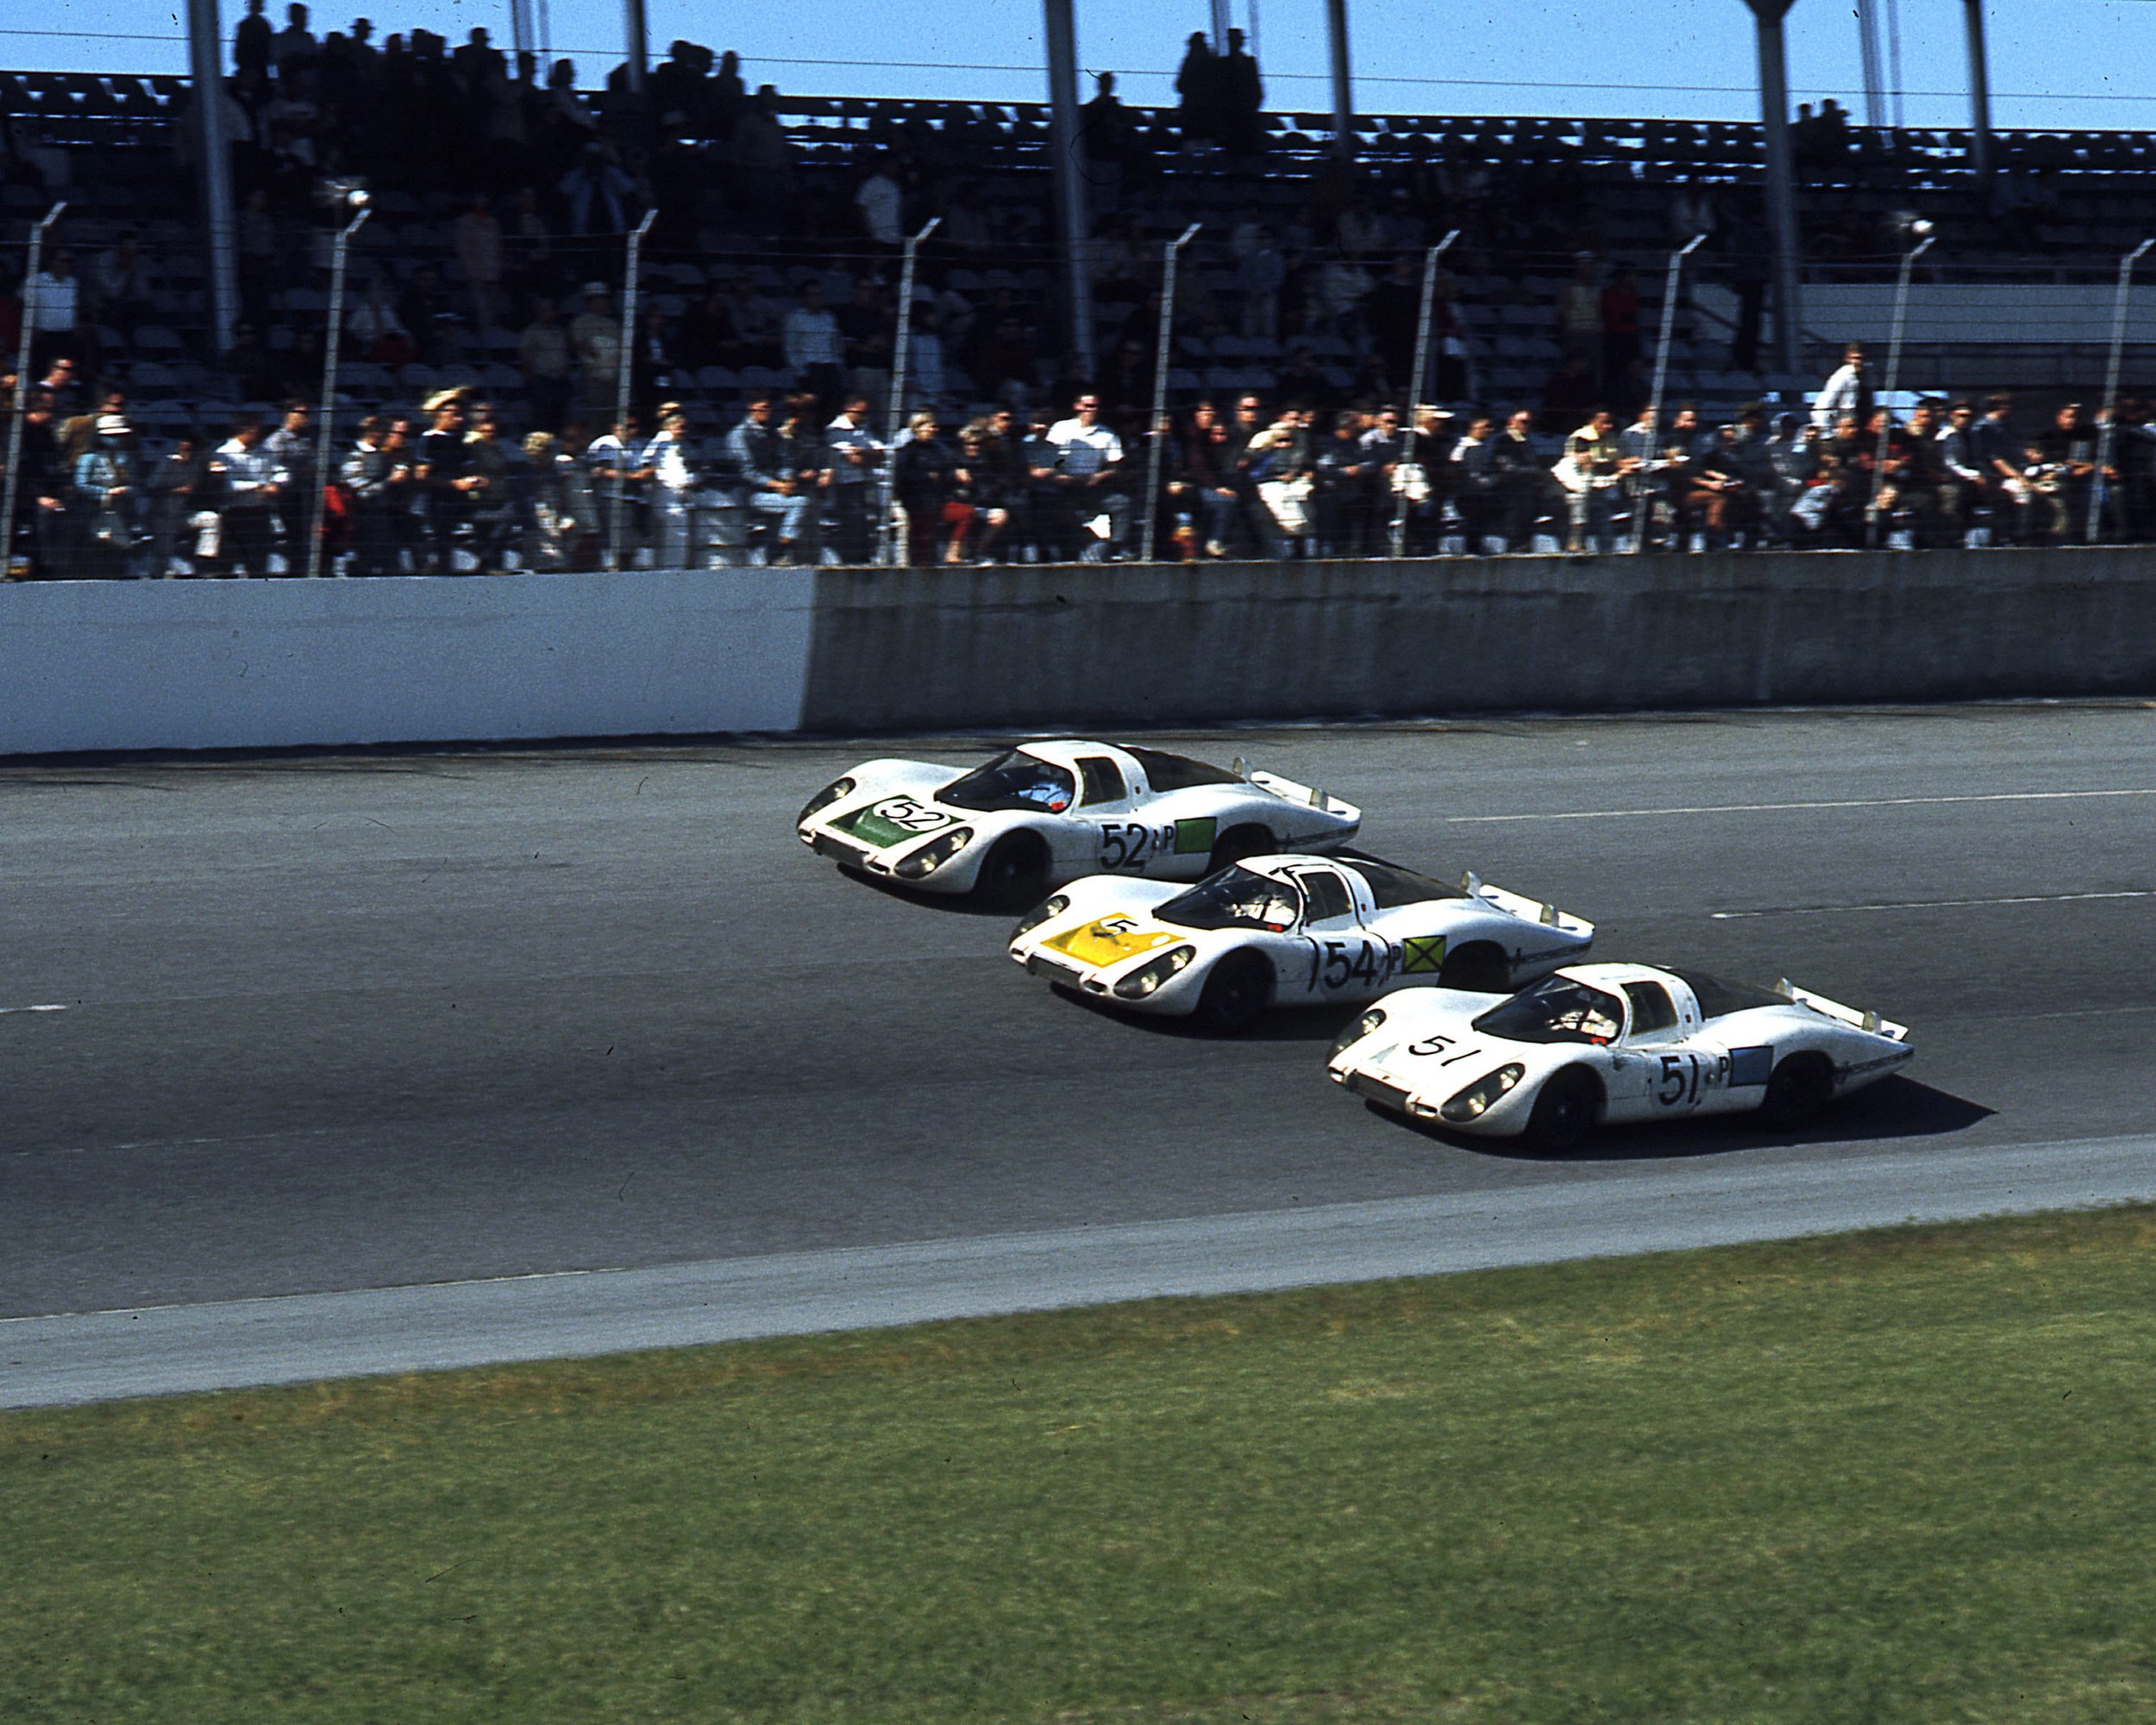 1968 907 Daytona Win Threesome.jpg